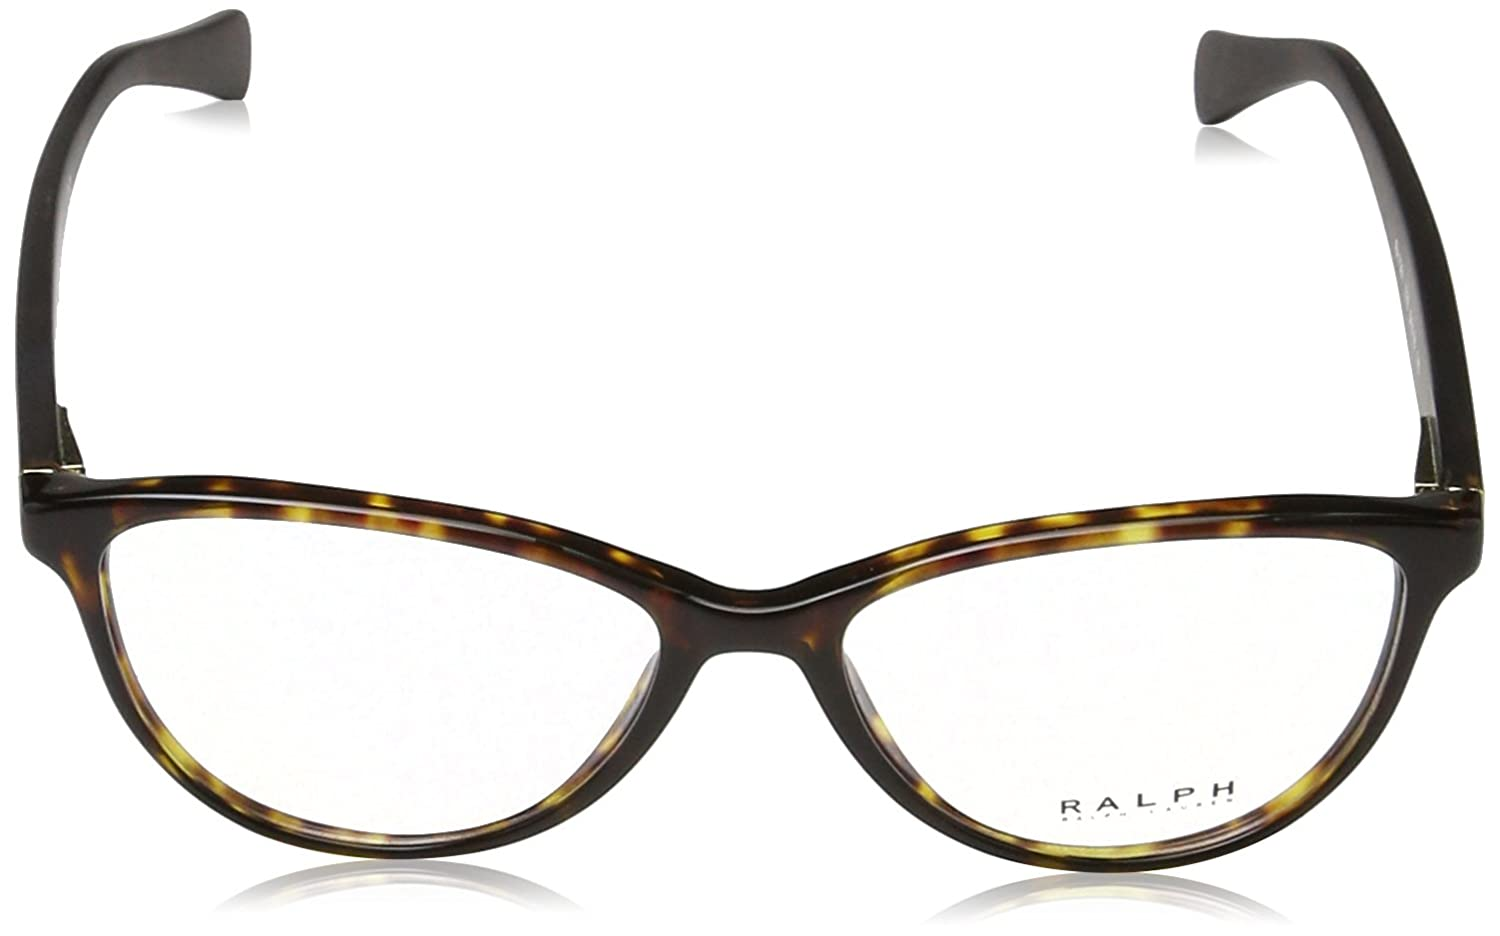 Amazon.com: Ralph by RALPH LAUREN – Ra 7061, Geométrico ...